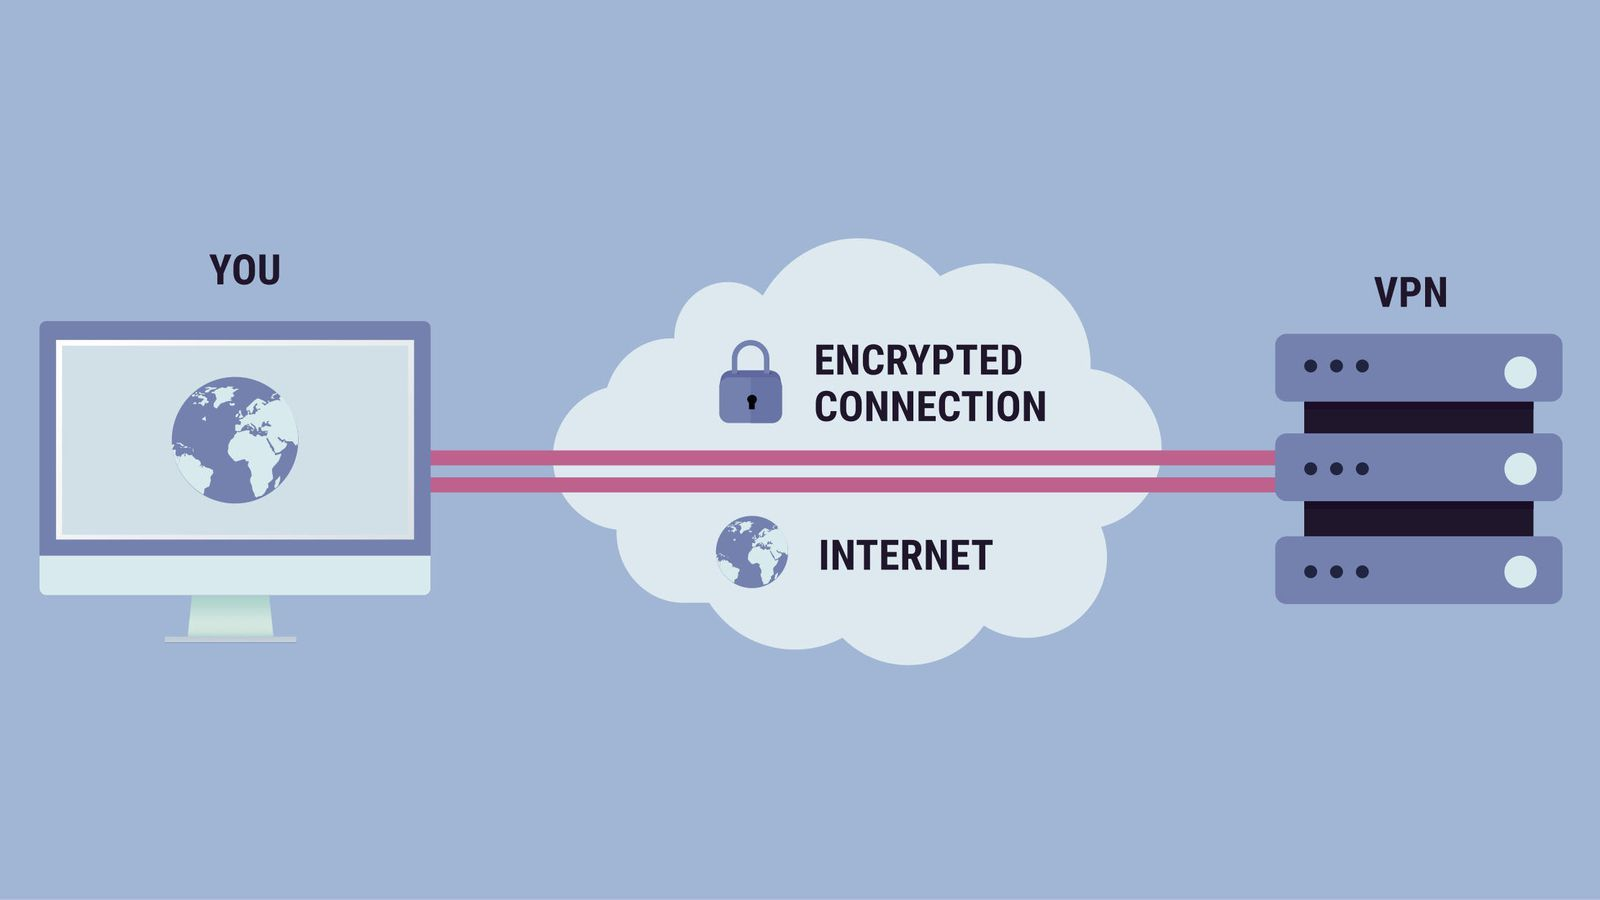 9dfc23835c63b35fe276f6eaa1cff4f0 - The Best Vpn Services For 2019